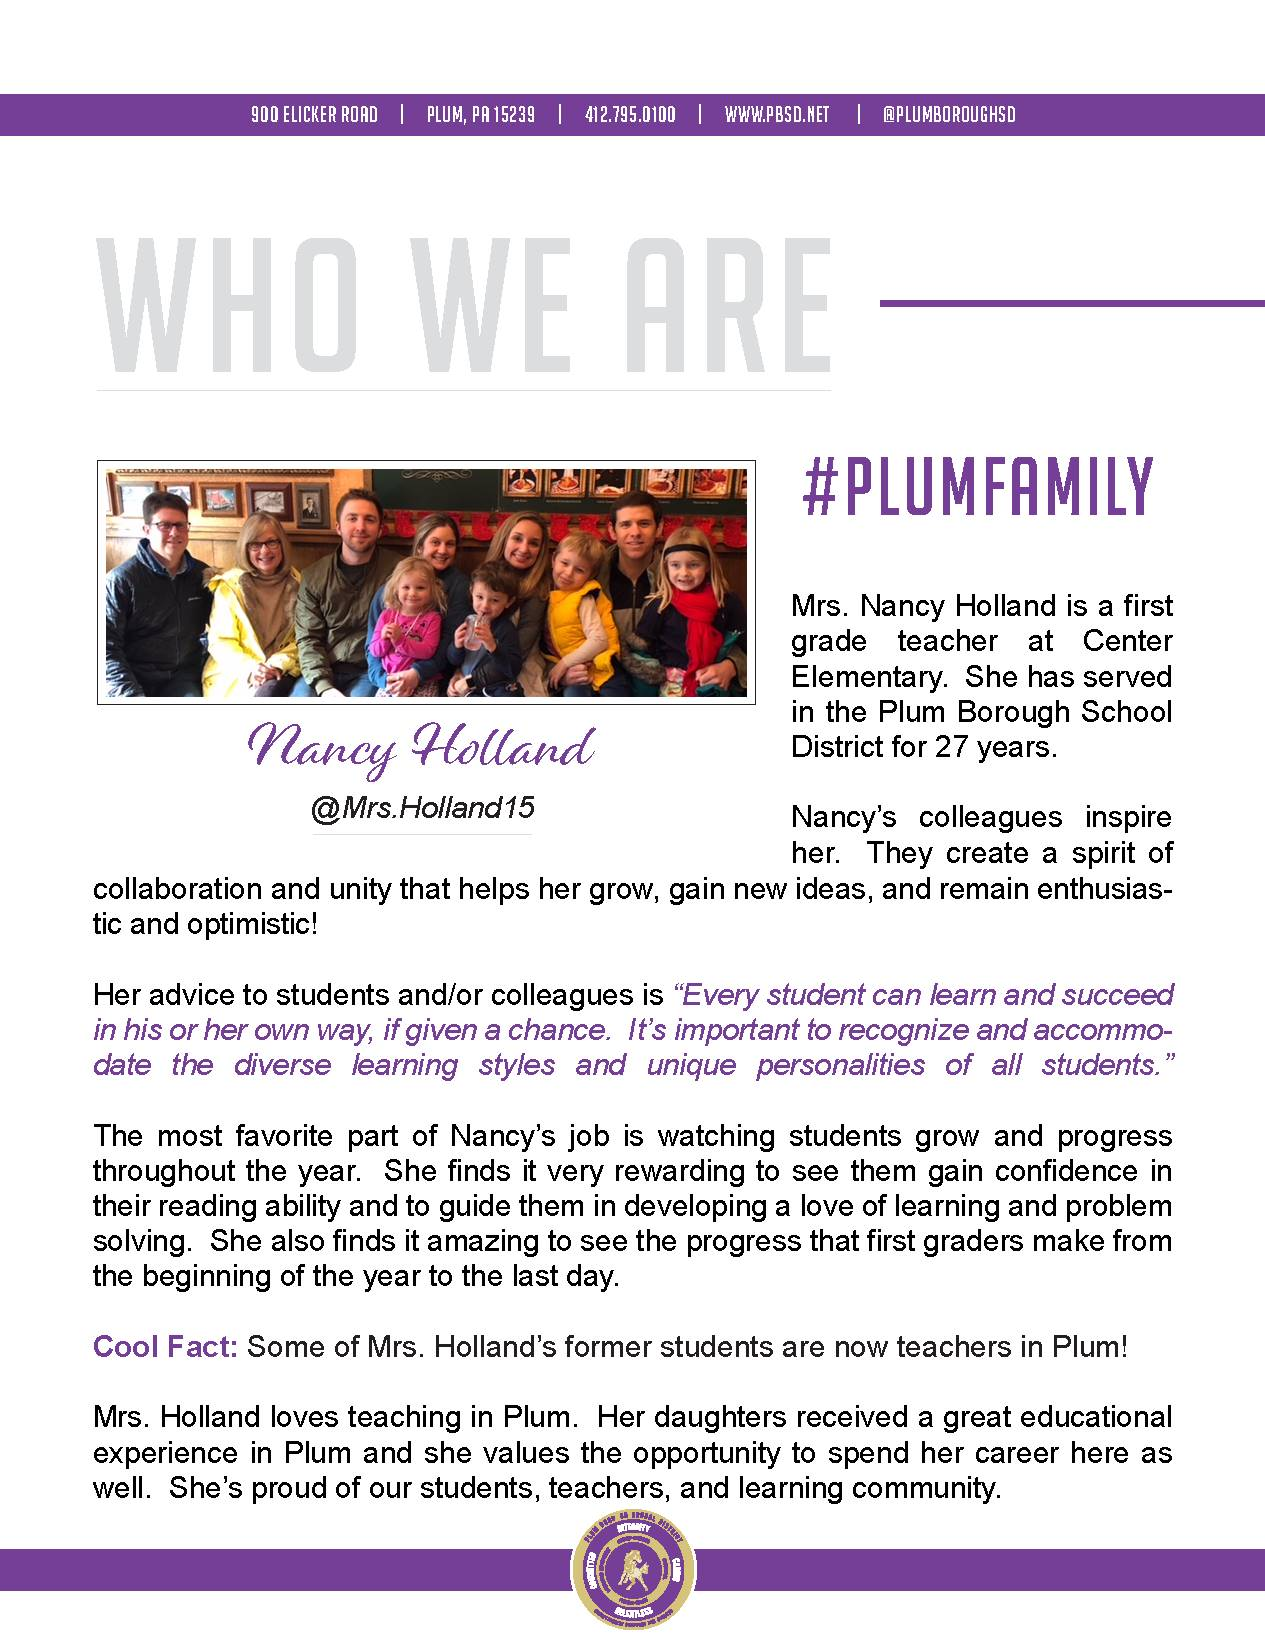 Who We Are Wednesday features Nancy Holland.